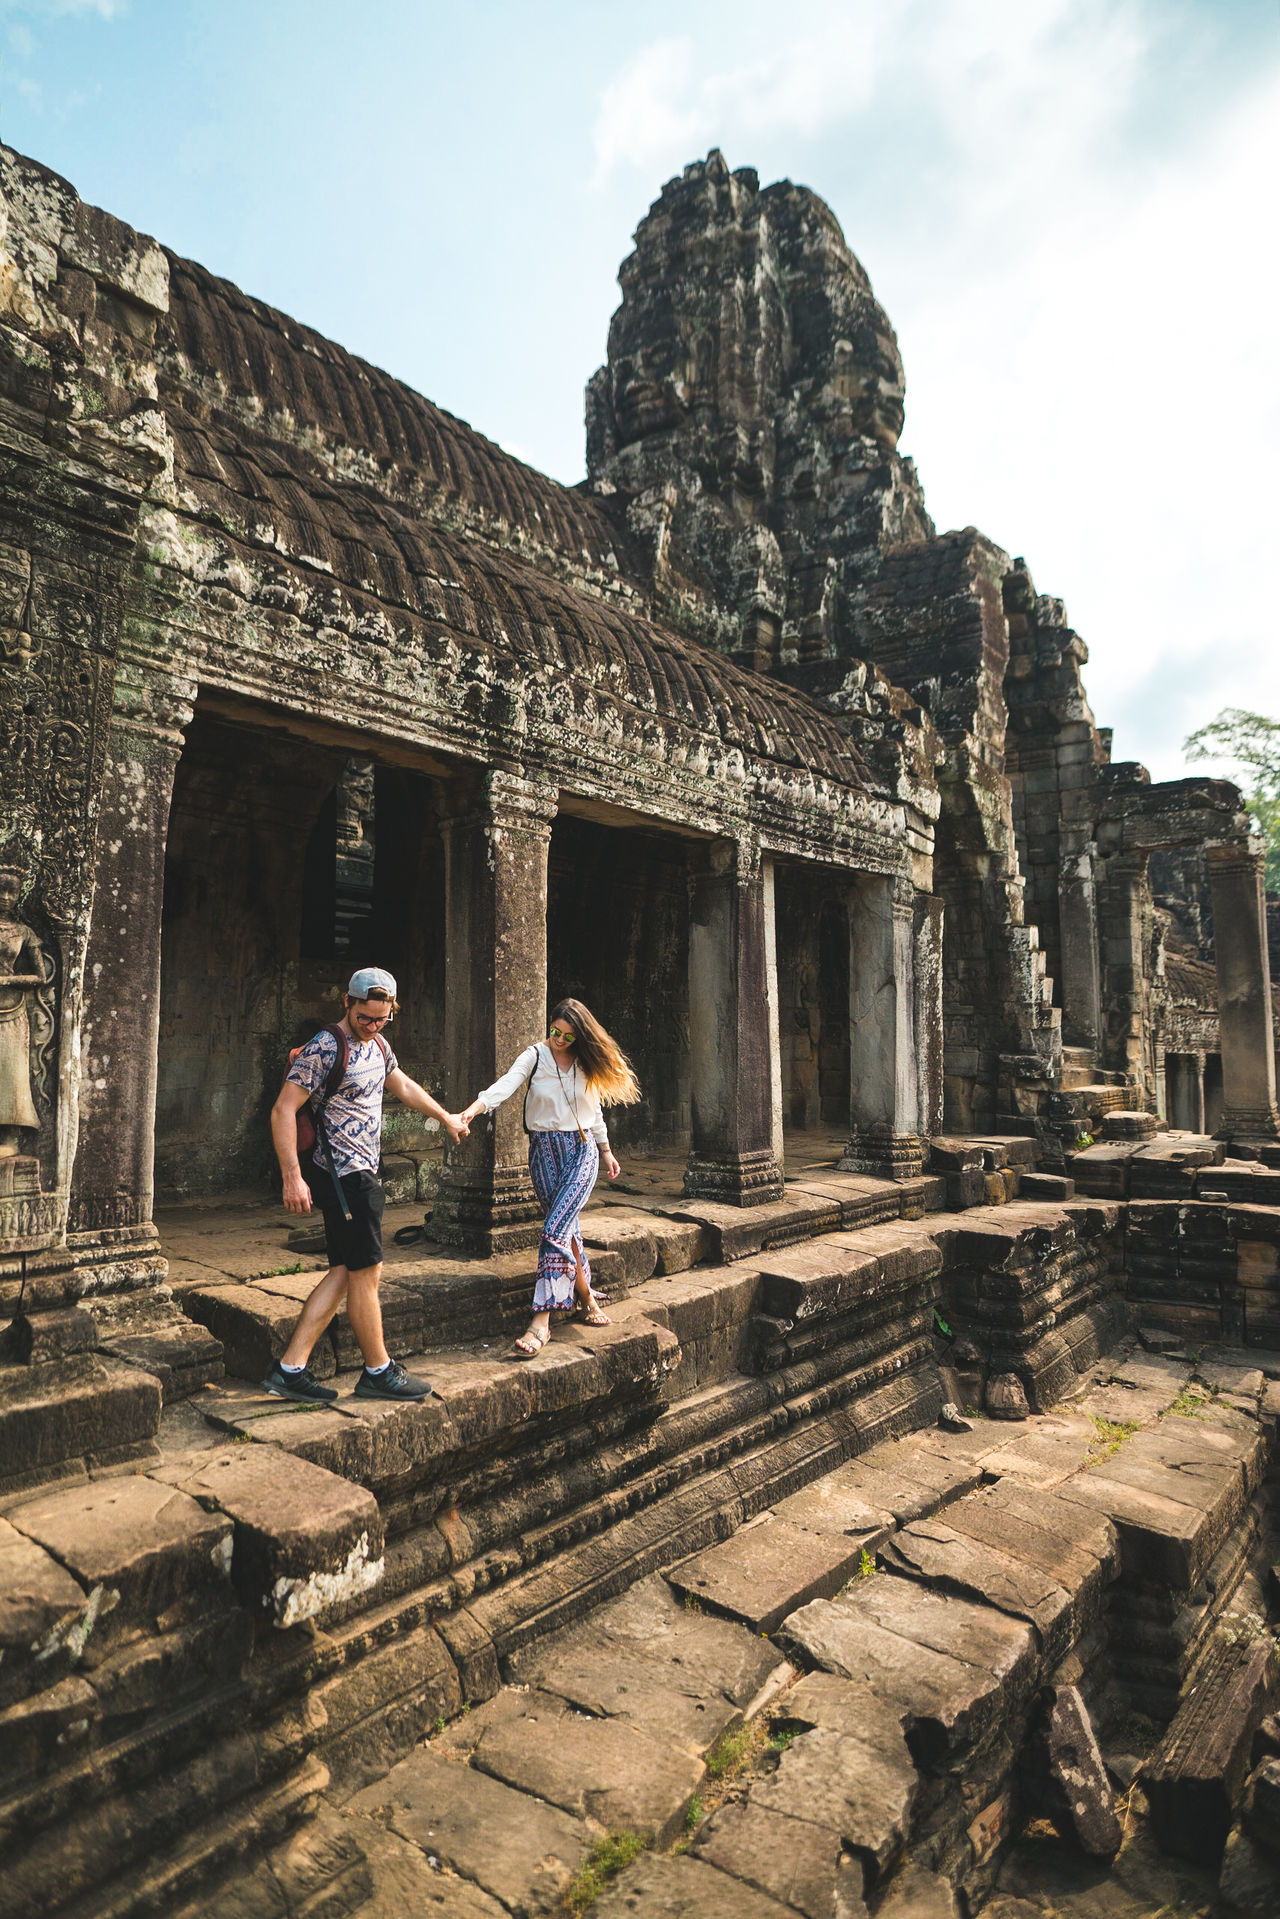 Enjoy the world. Don't stay home. Two People Adult People Togetherness Vacations Architecture Architecture Built Structure Building Exterior Travel Old Ruin Ancient Civilization Wonder Of The World Cambodia Real Life ASIA Temple Culture Showcase May Full Frame Travel Destinations Religion Travel Photography